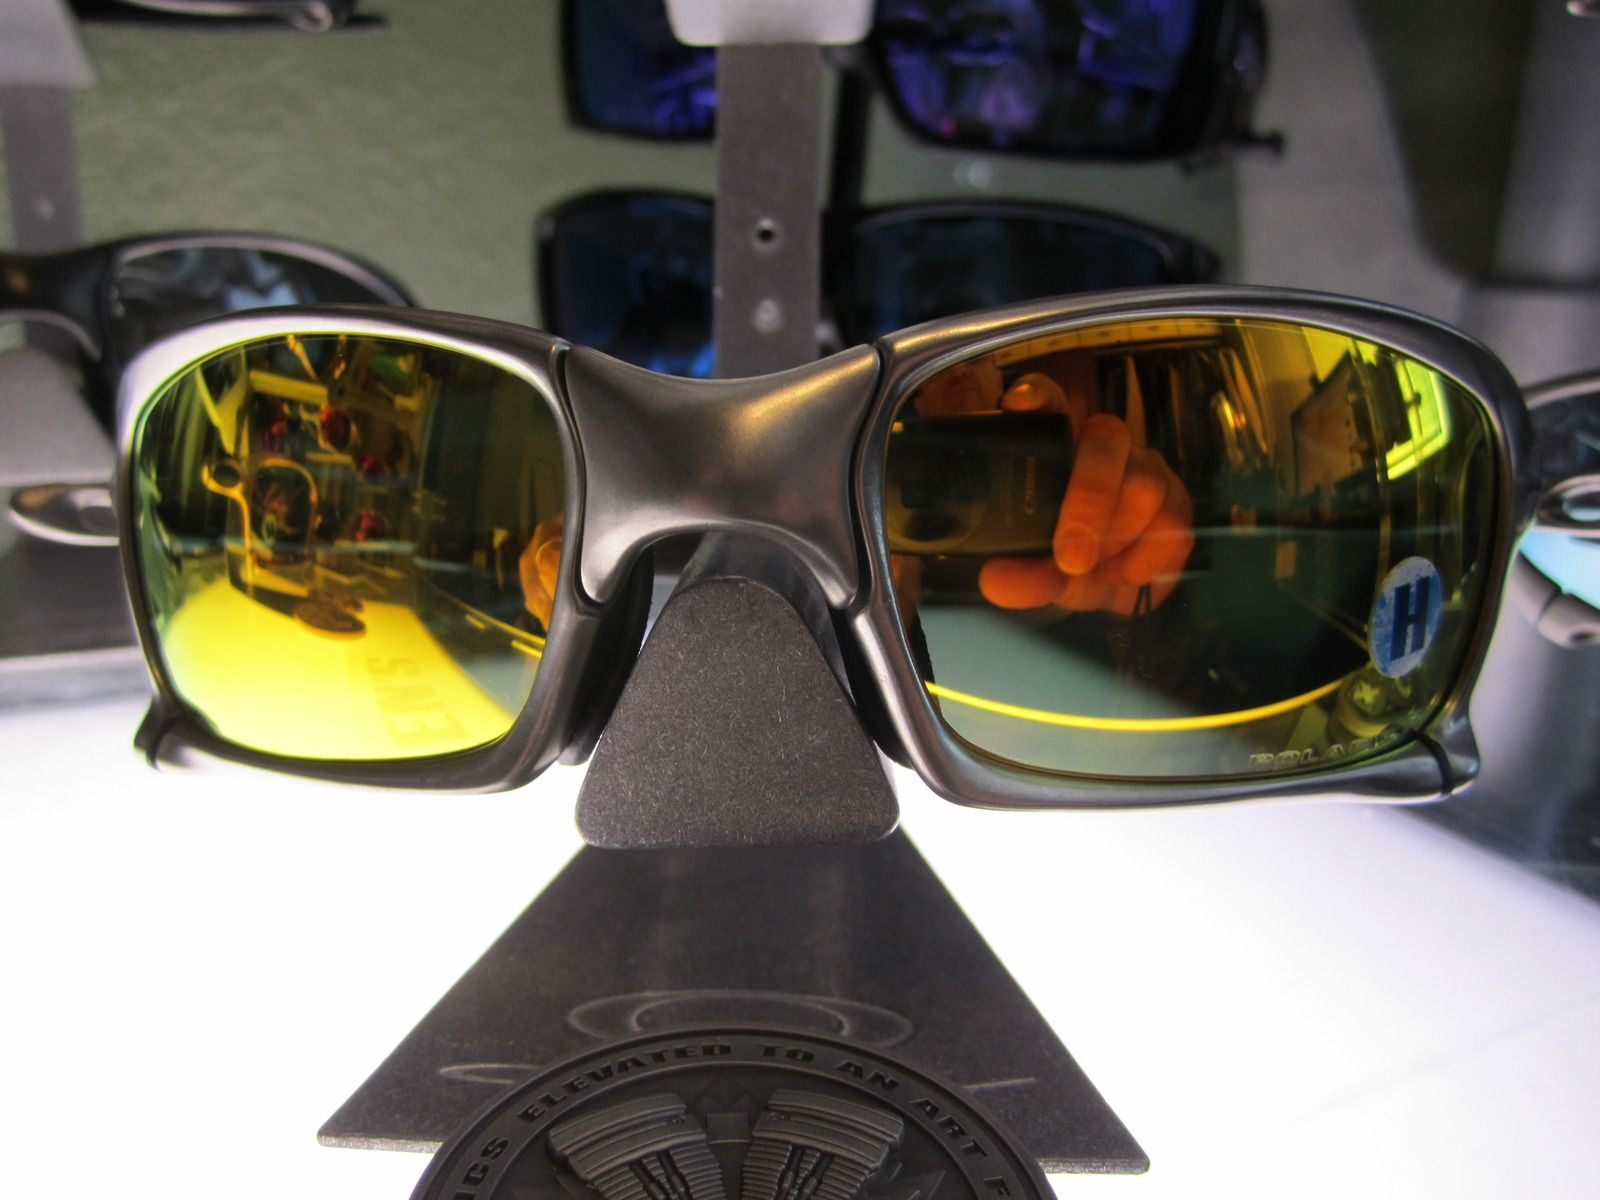 New Arrivals To The Metal Zone - IMG_0802.JPG